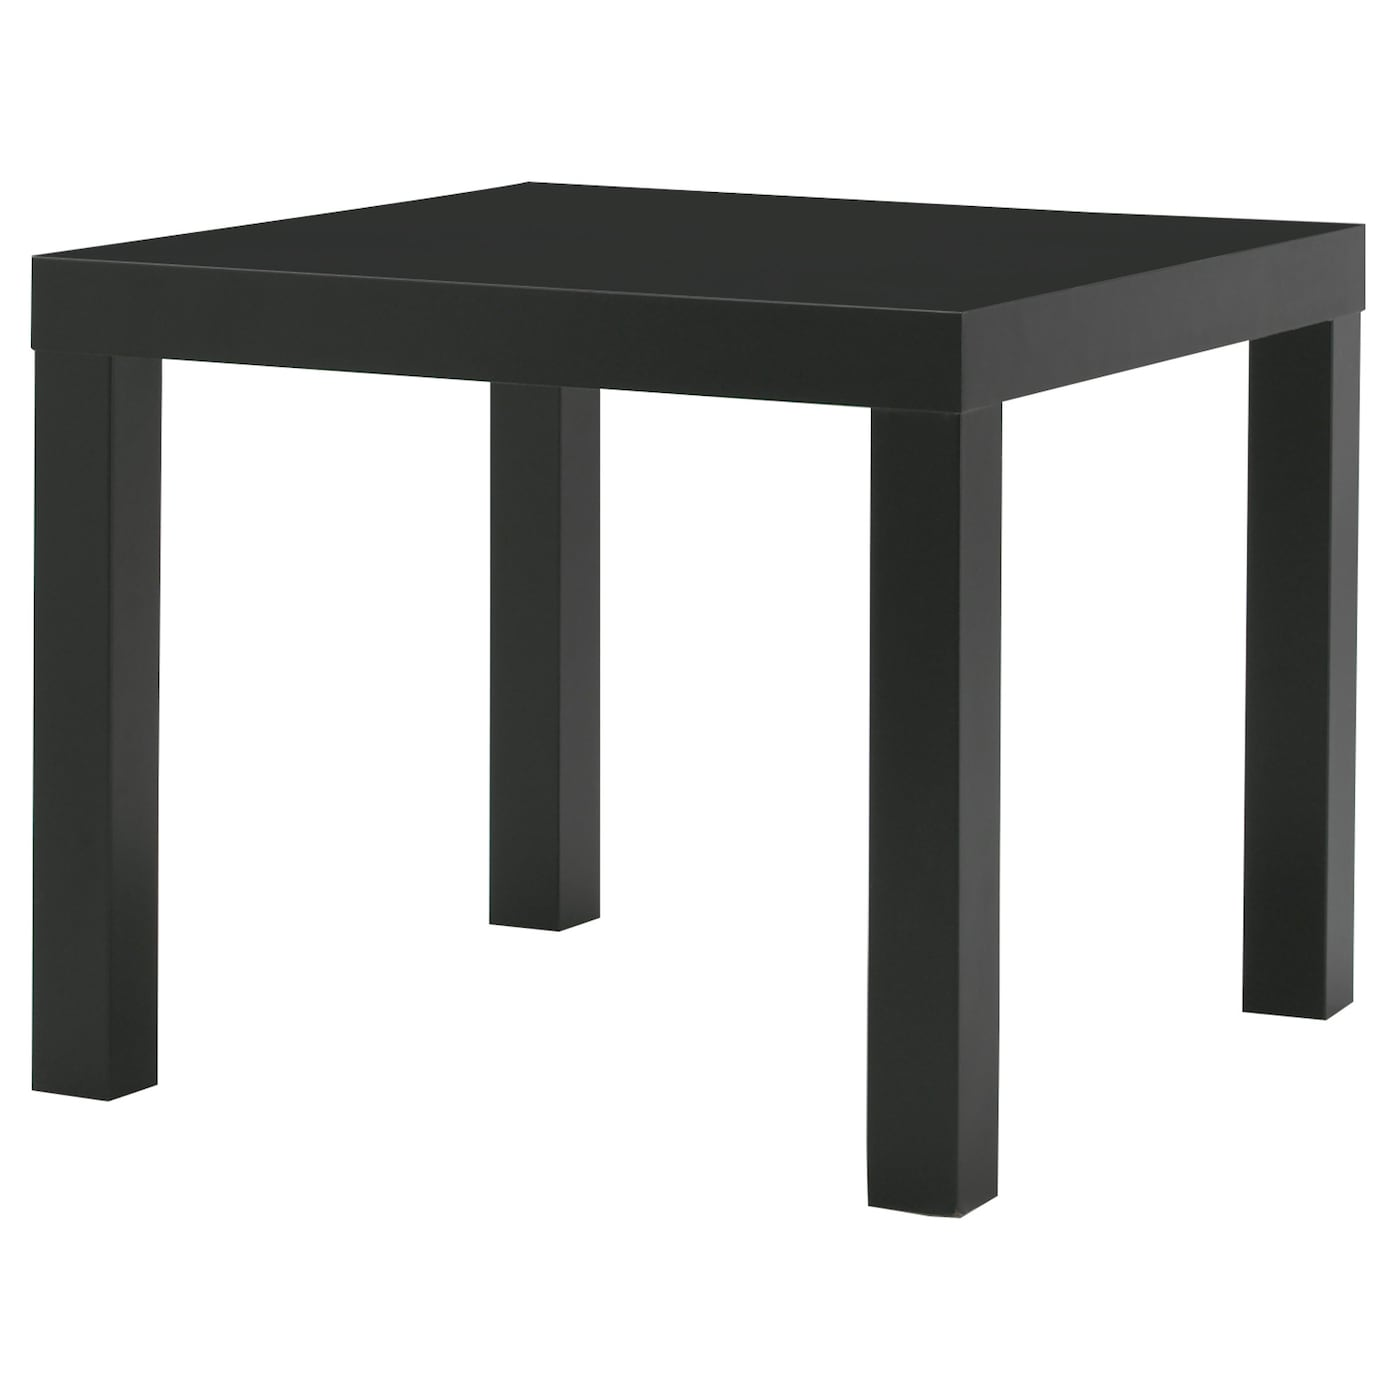 ikea tables dining tables. Black Bedroom Furniture Sets. Home Design Ideas